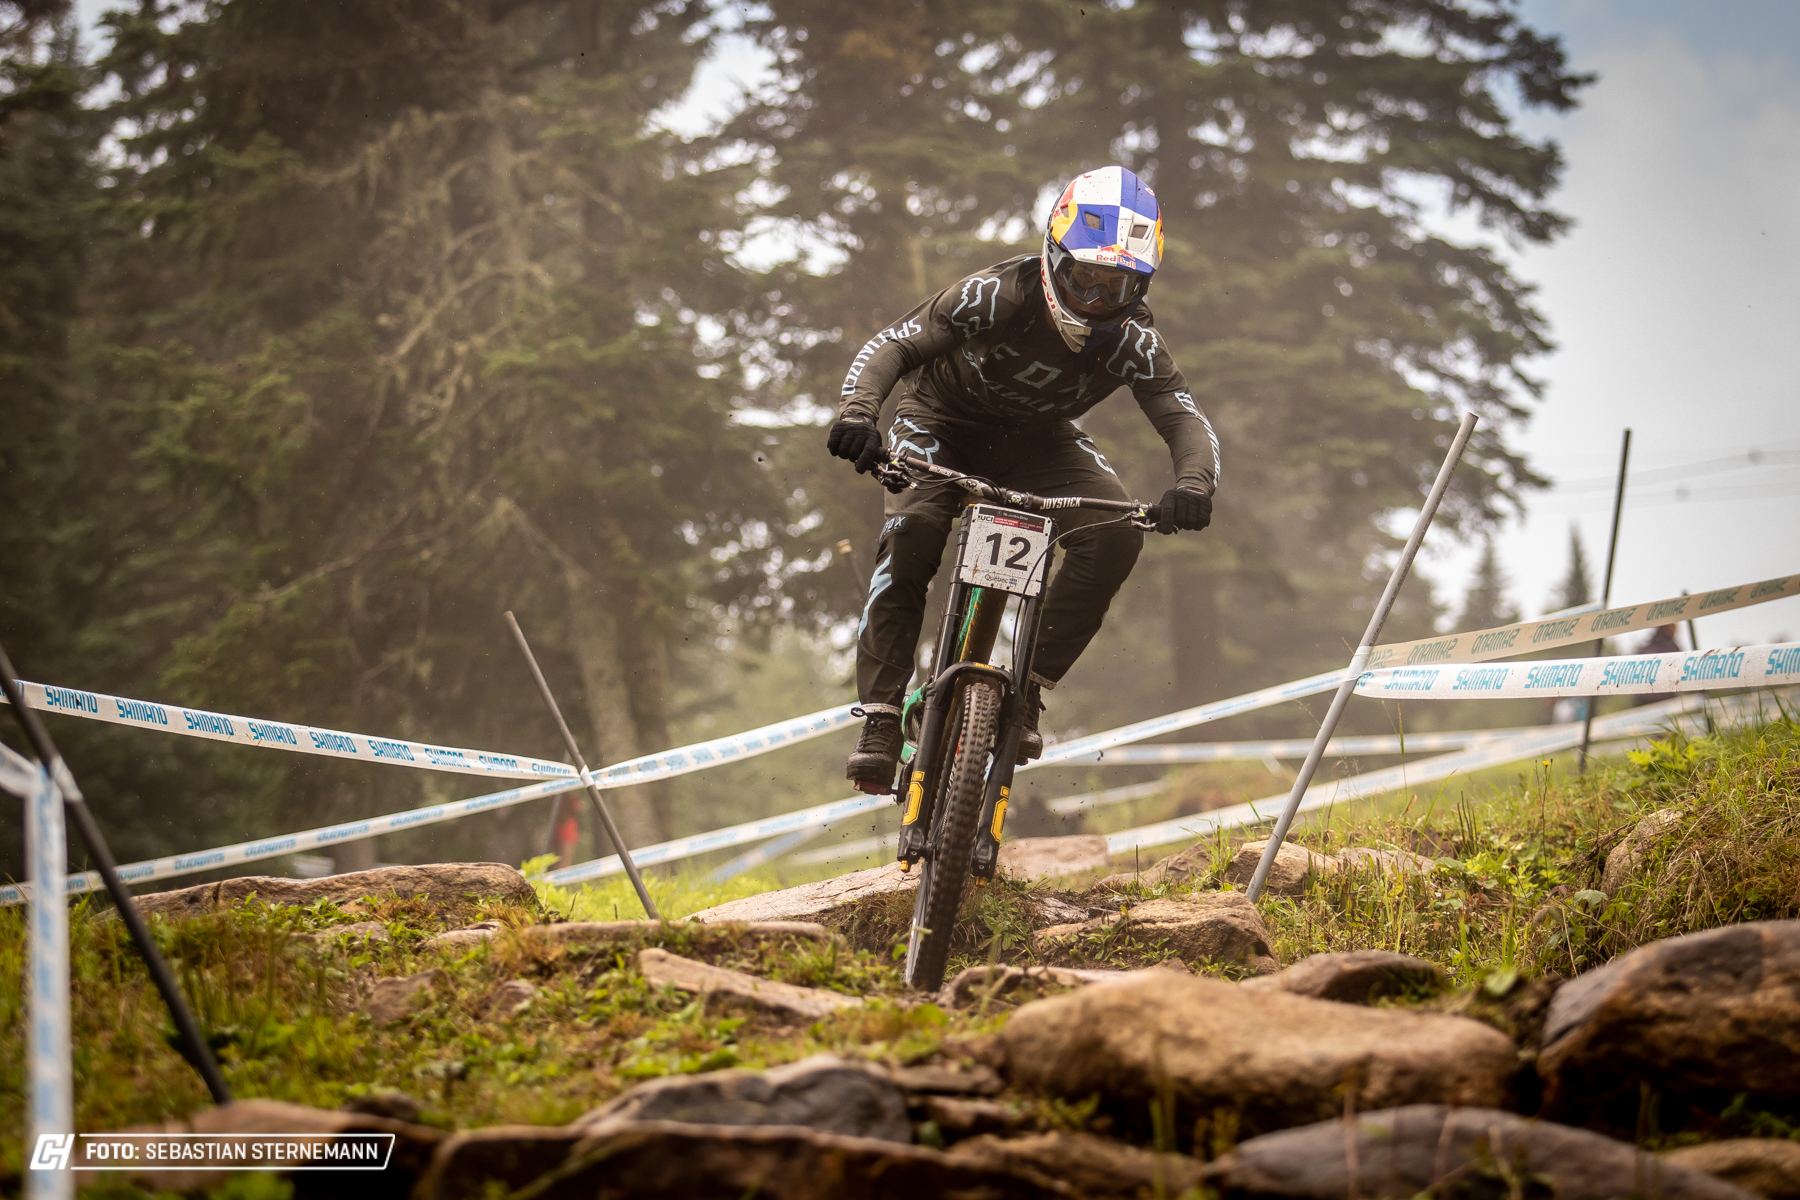 UCI DHI Worldcup MSA Thursday 1866 by Sternemann